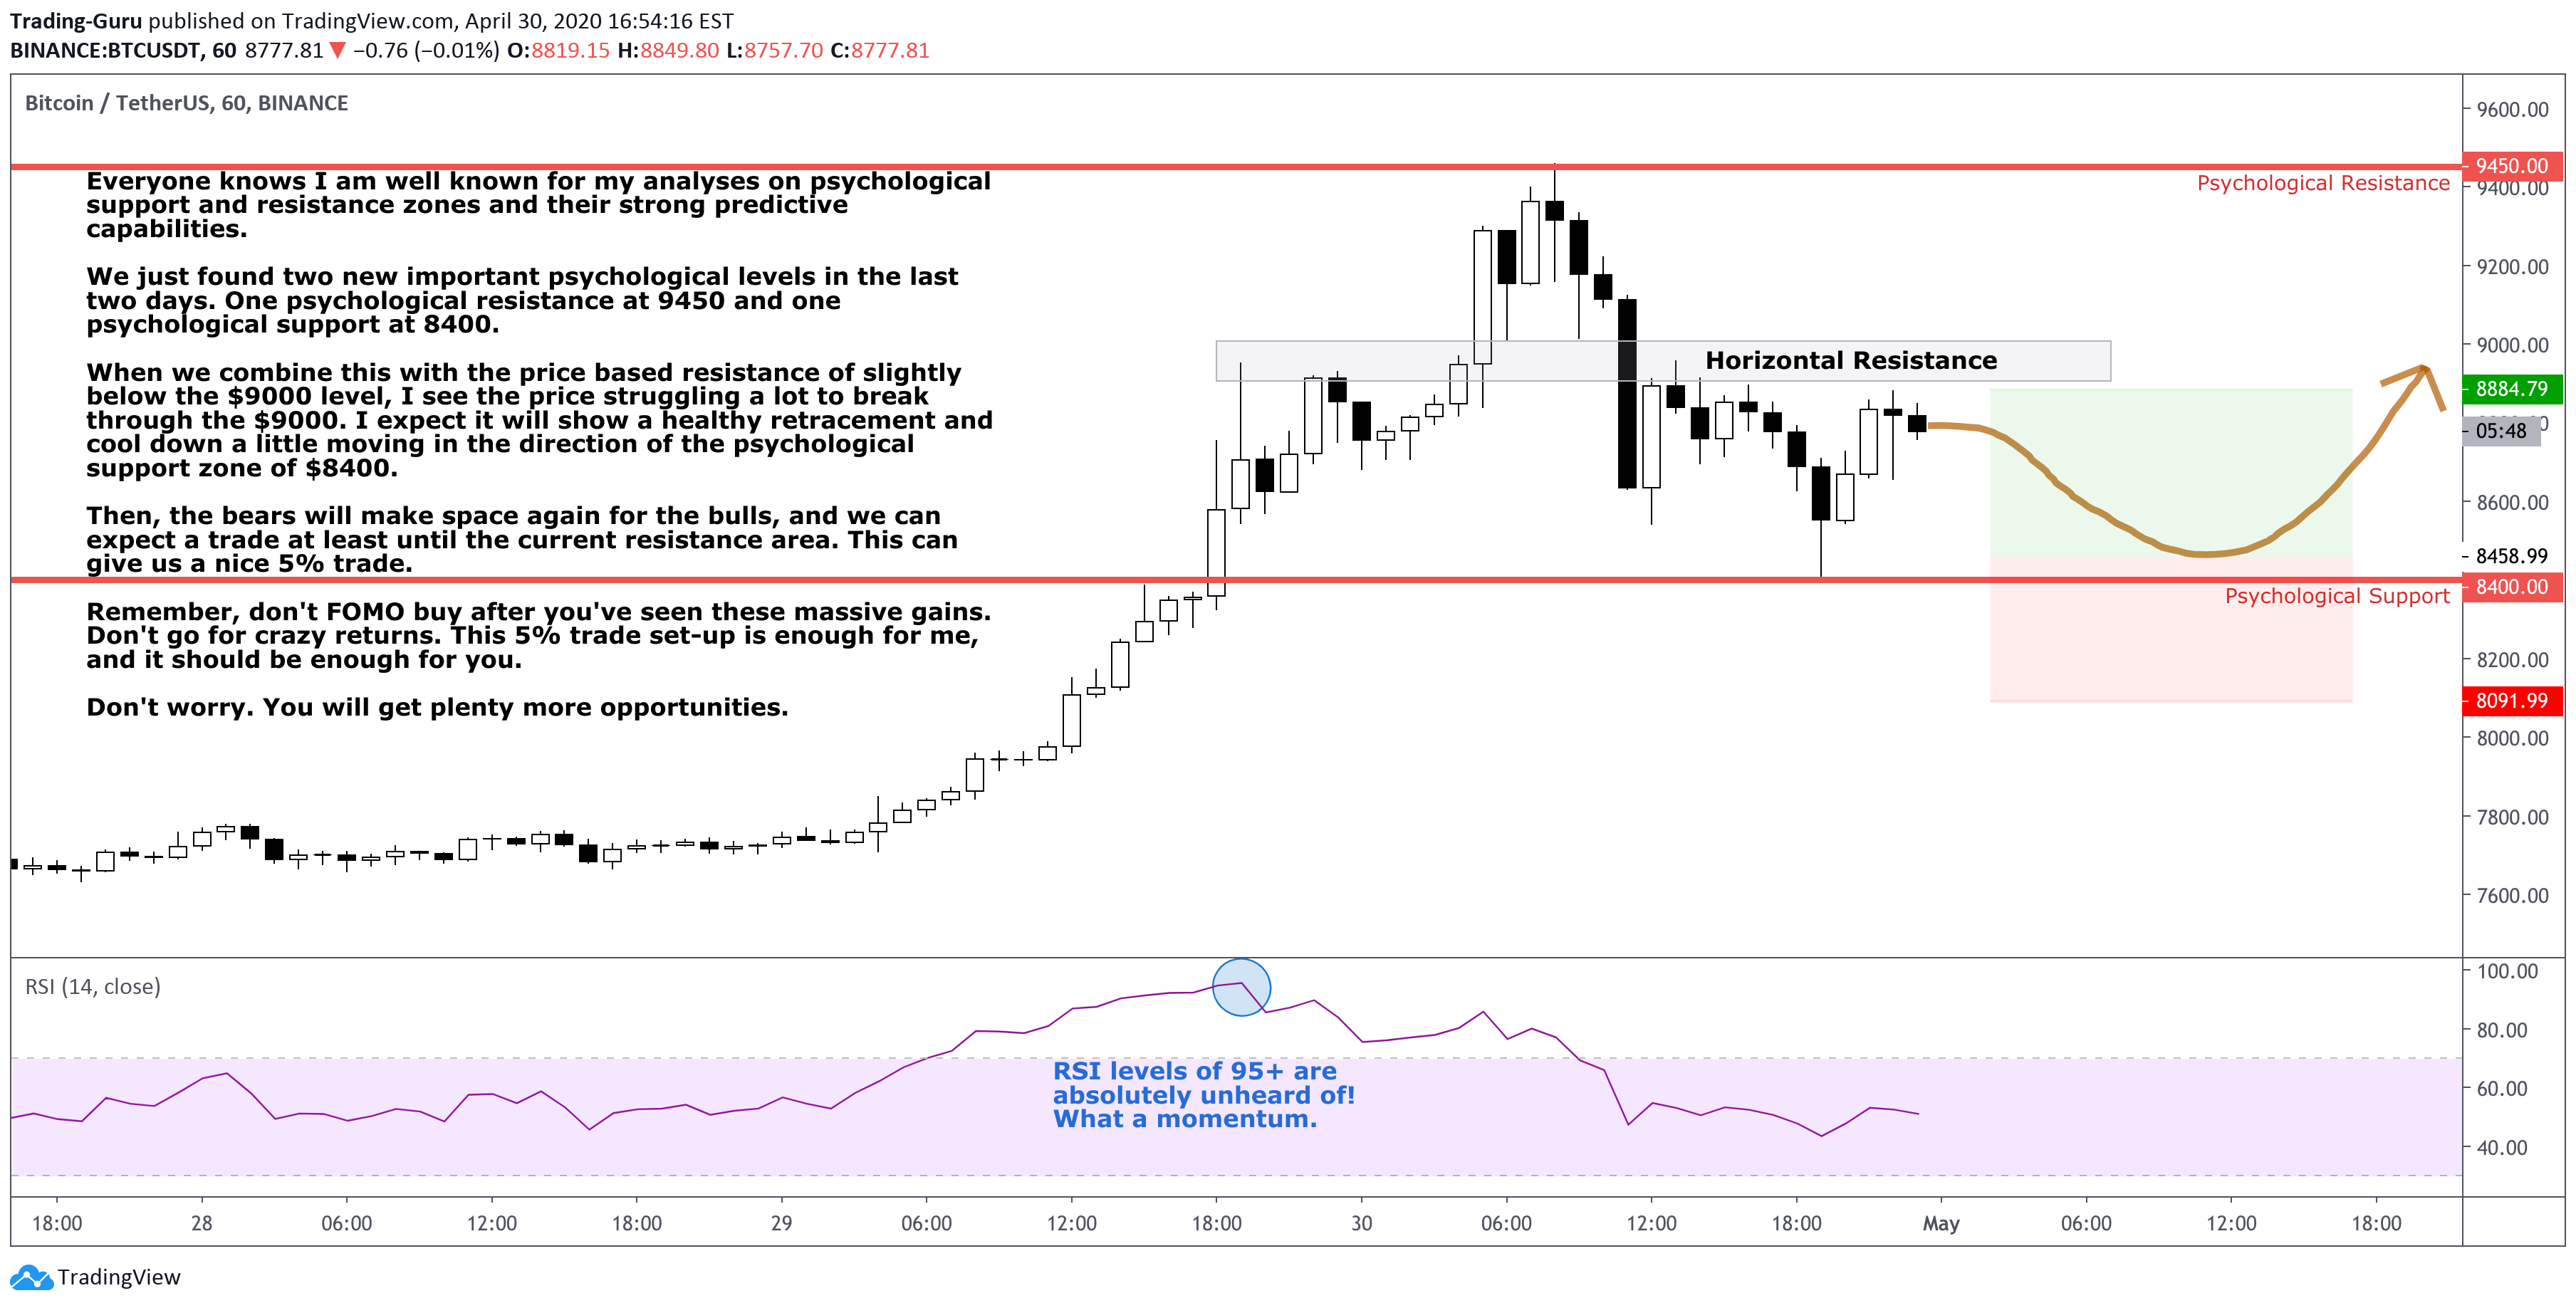 Trading directly in tradingview mariner investment group seeding new lawn